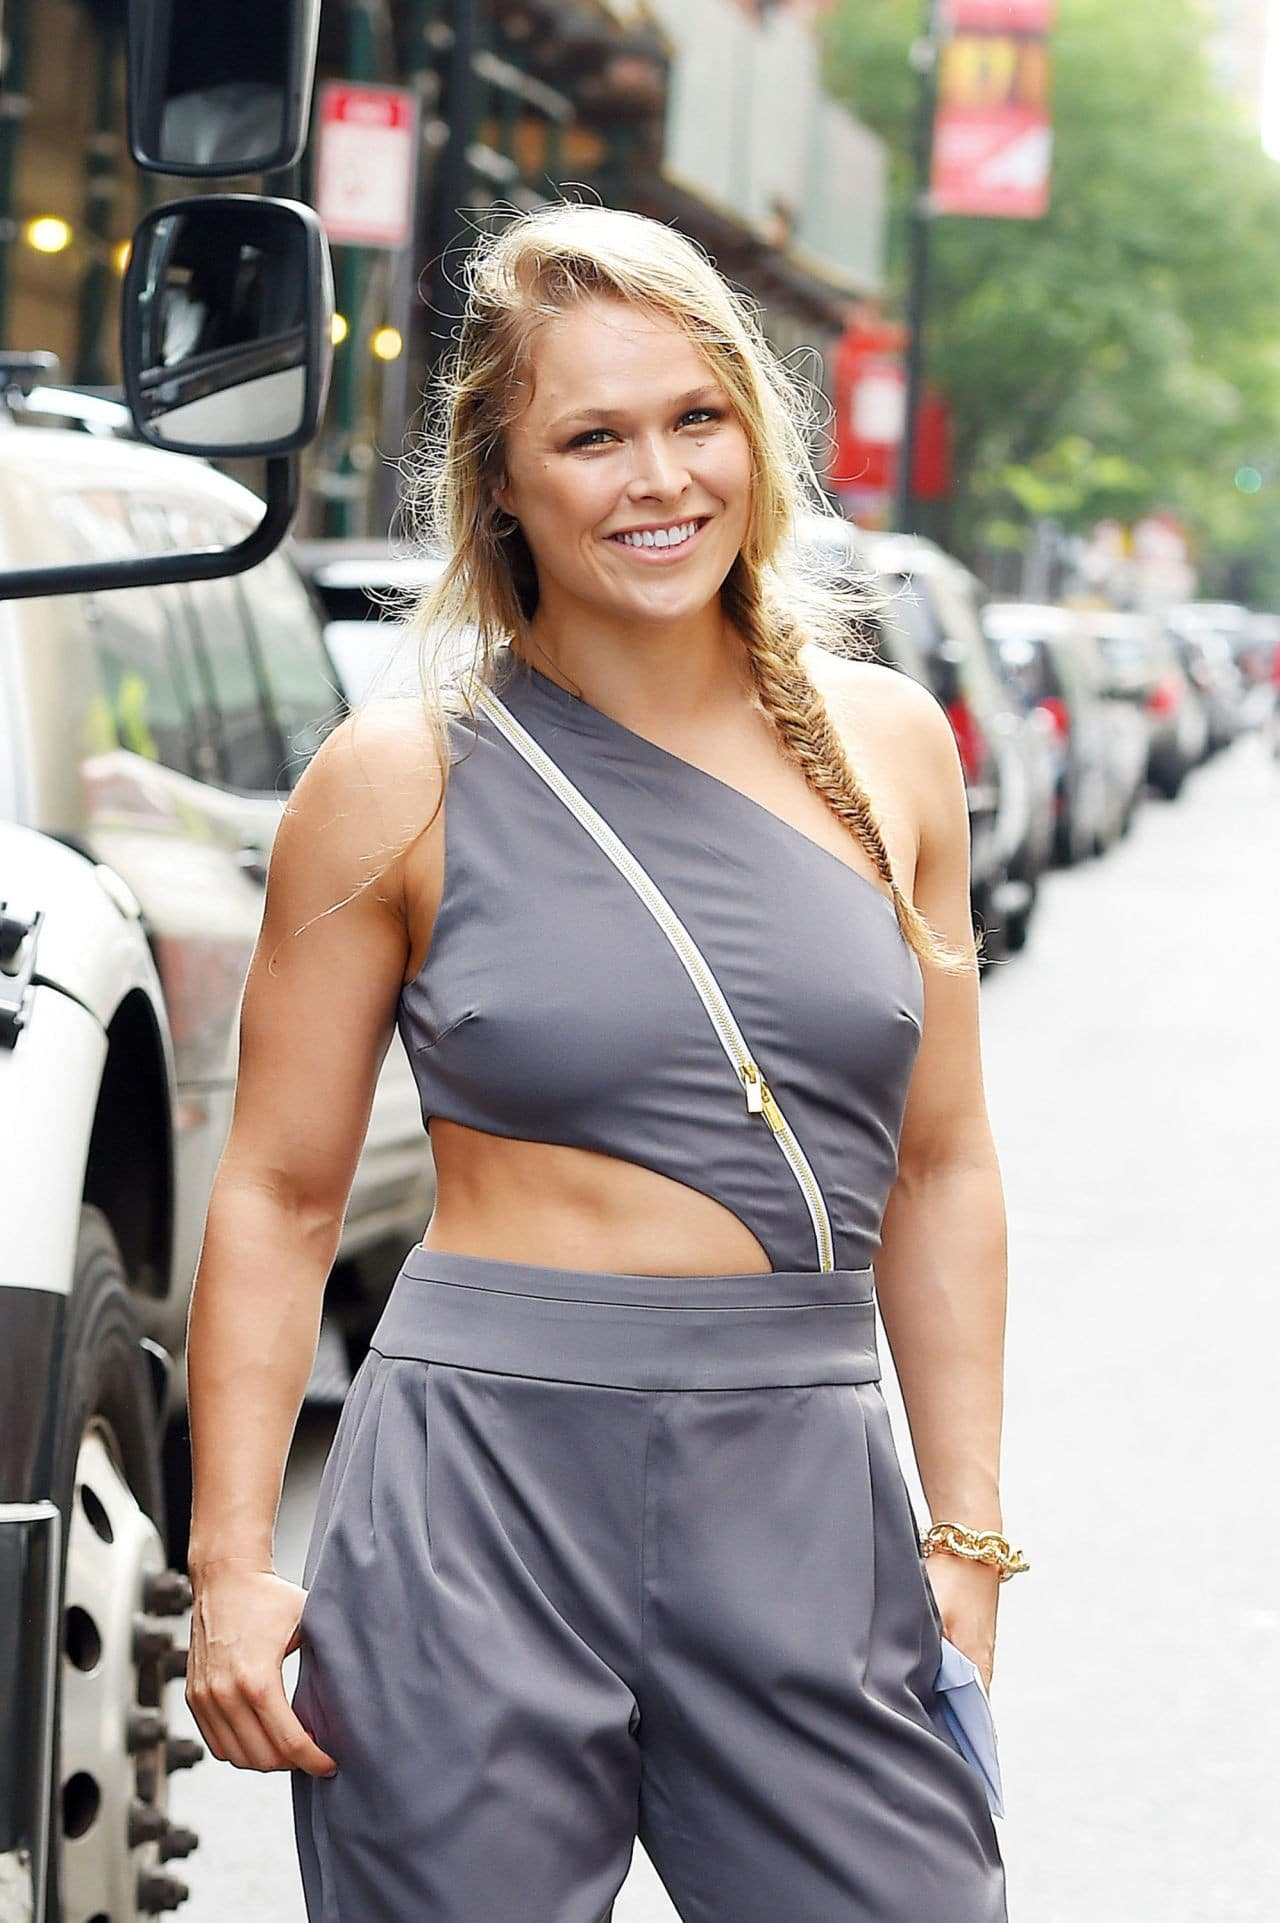 Ronda rousey nude photos